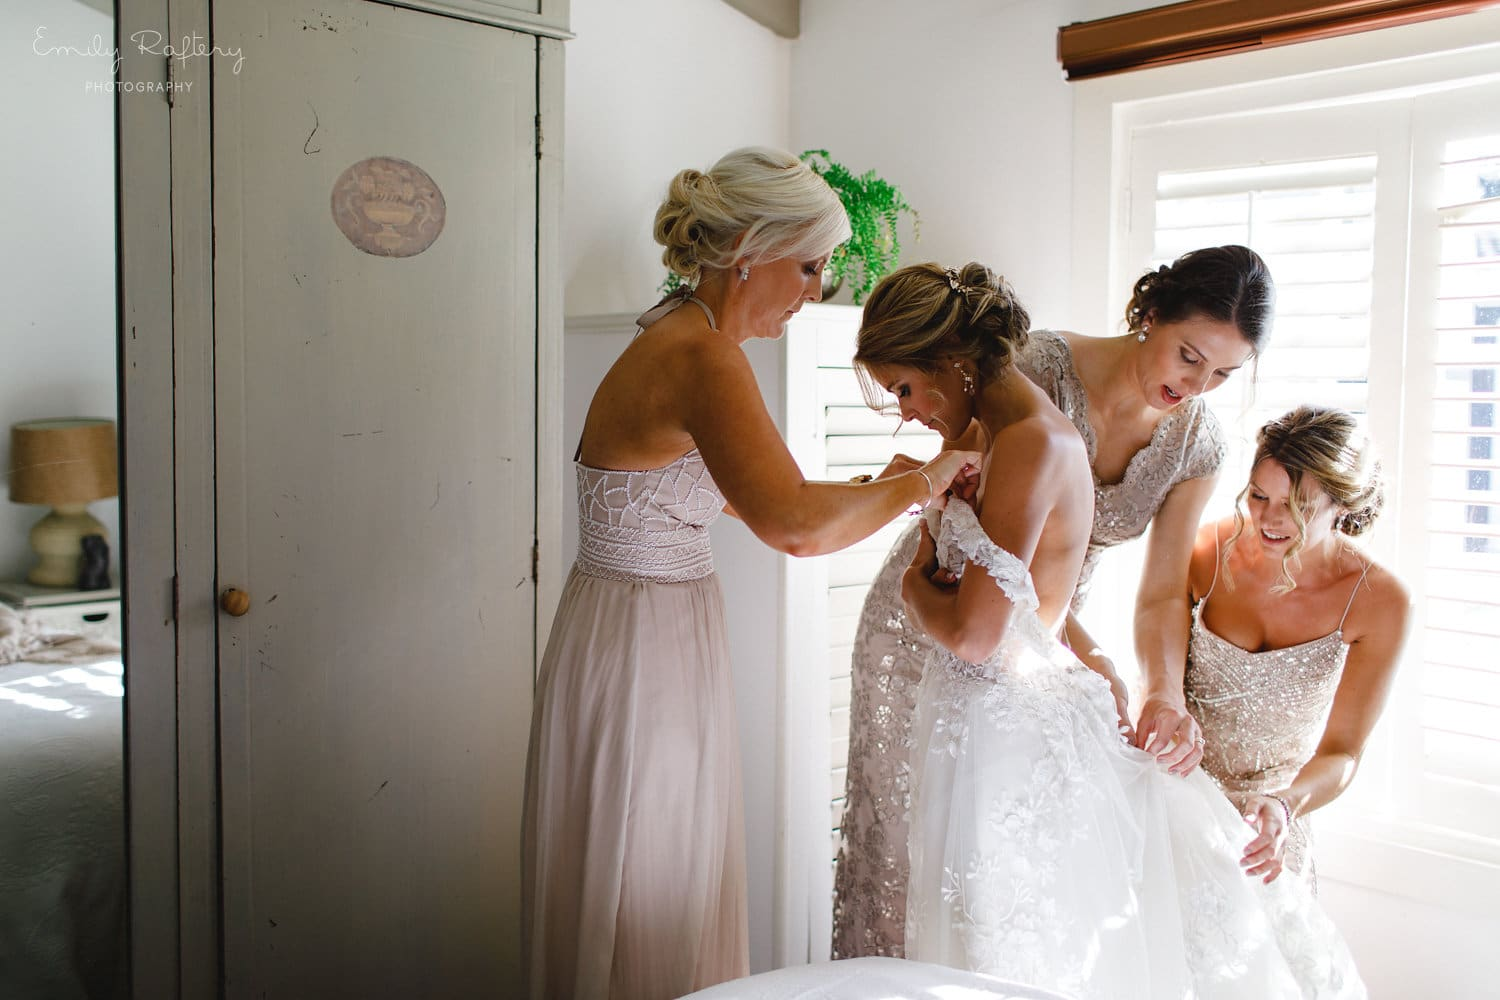 Real Weddings | Vinka Design | Real Brides Wearing Vinka Gowns | Helena and Tim - Helena with bridesmaids helping her into beautiful bespoke Delta wedding dress